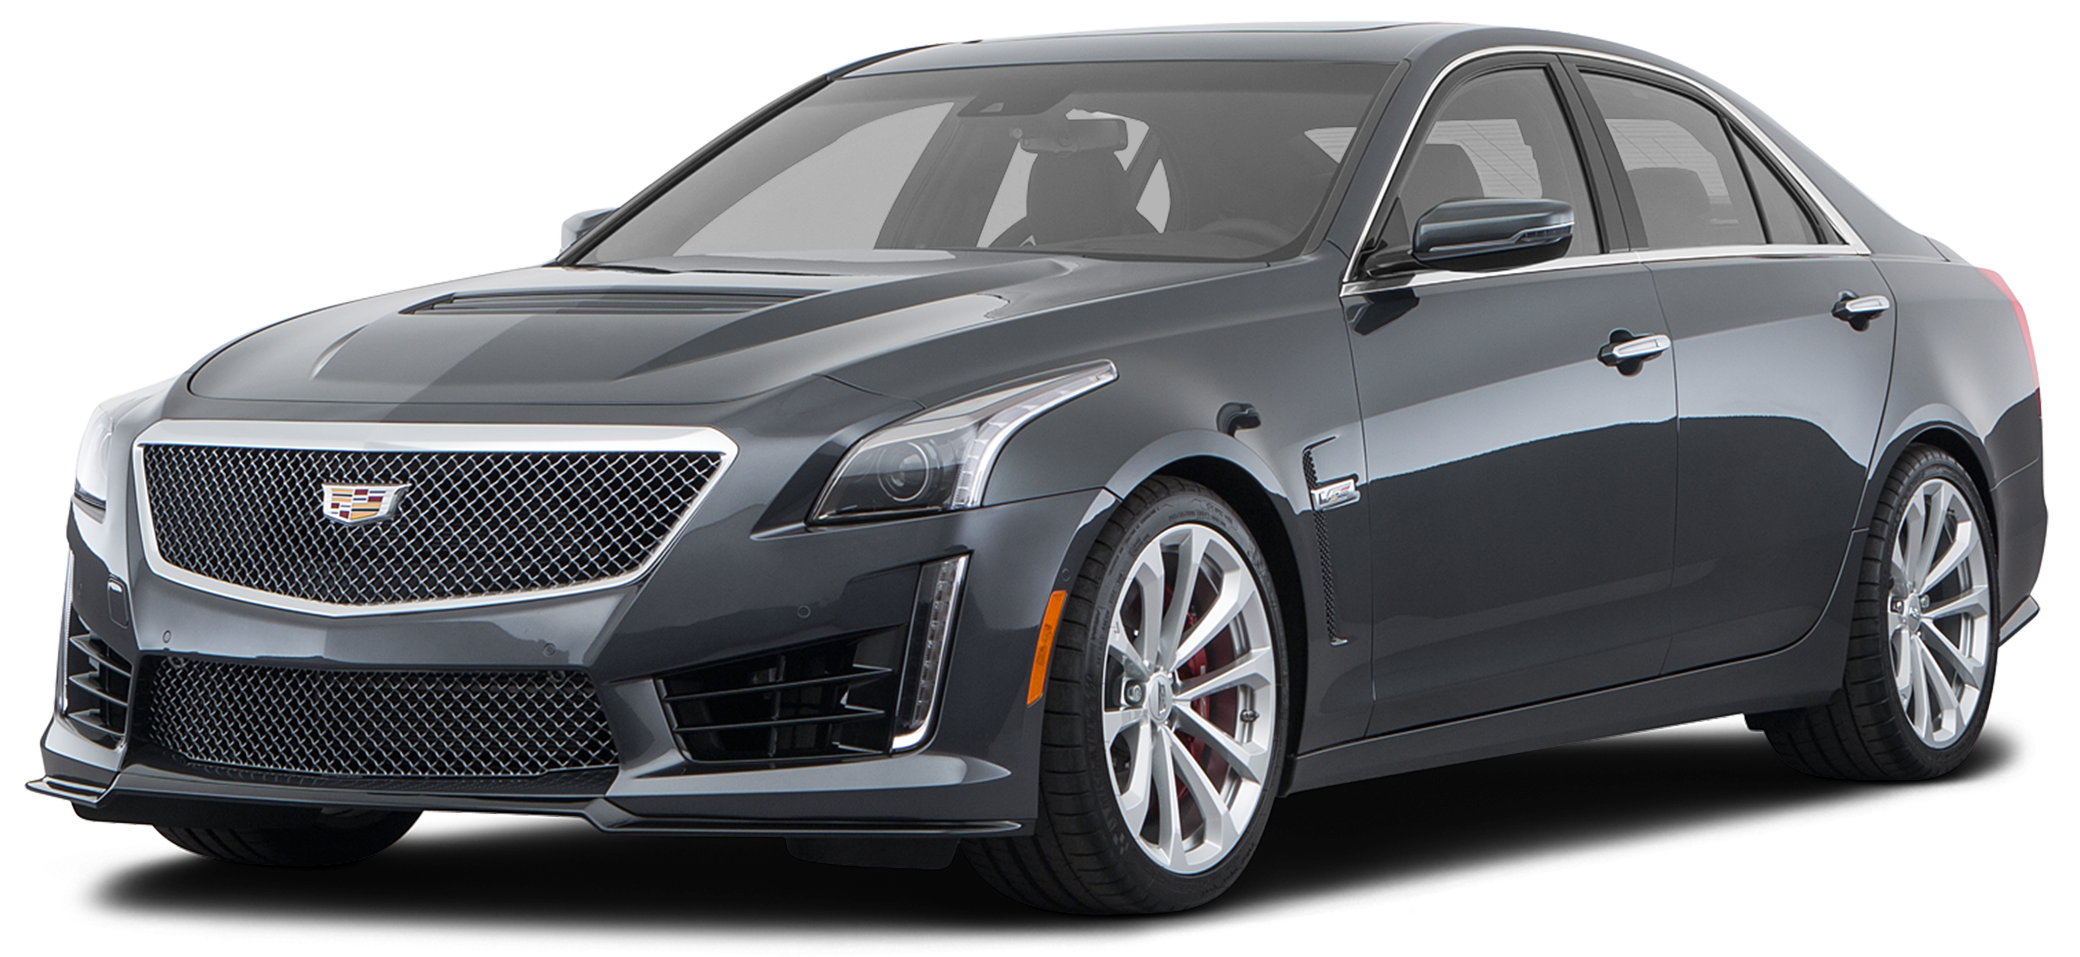 Midway Motors Hutchinson Ks >> 2019 CADILLAC CTS-V Incentives, Specials & Offers in McPherson KS